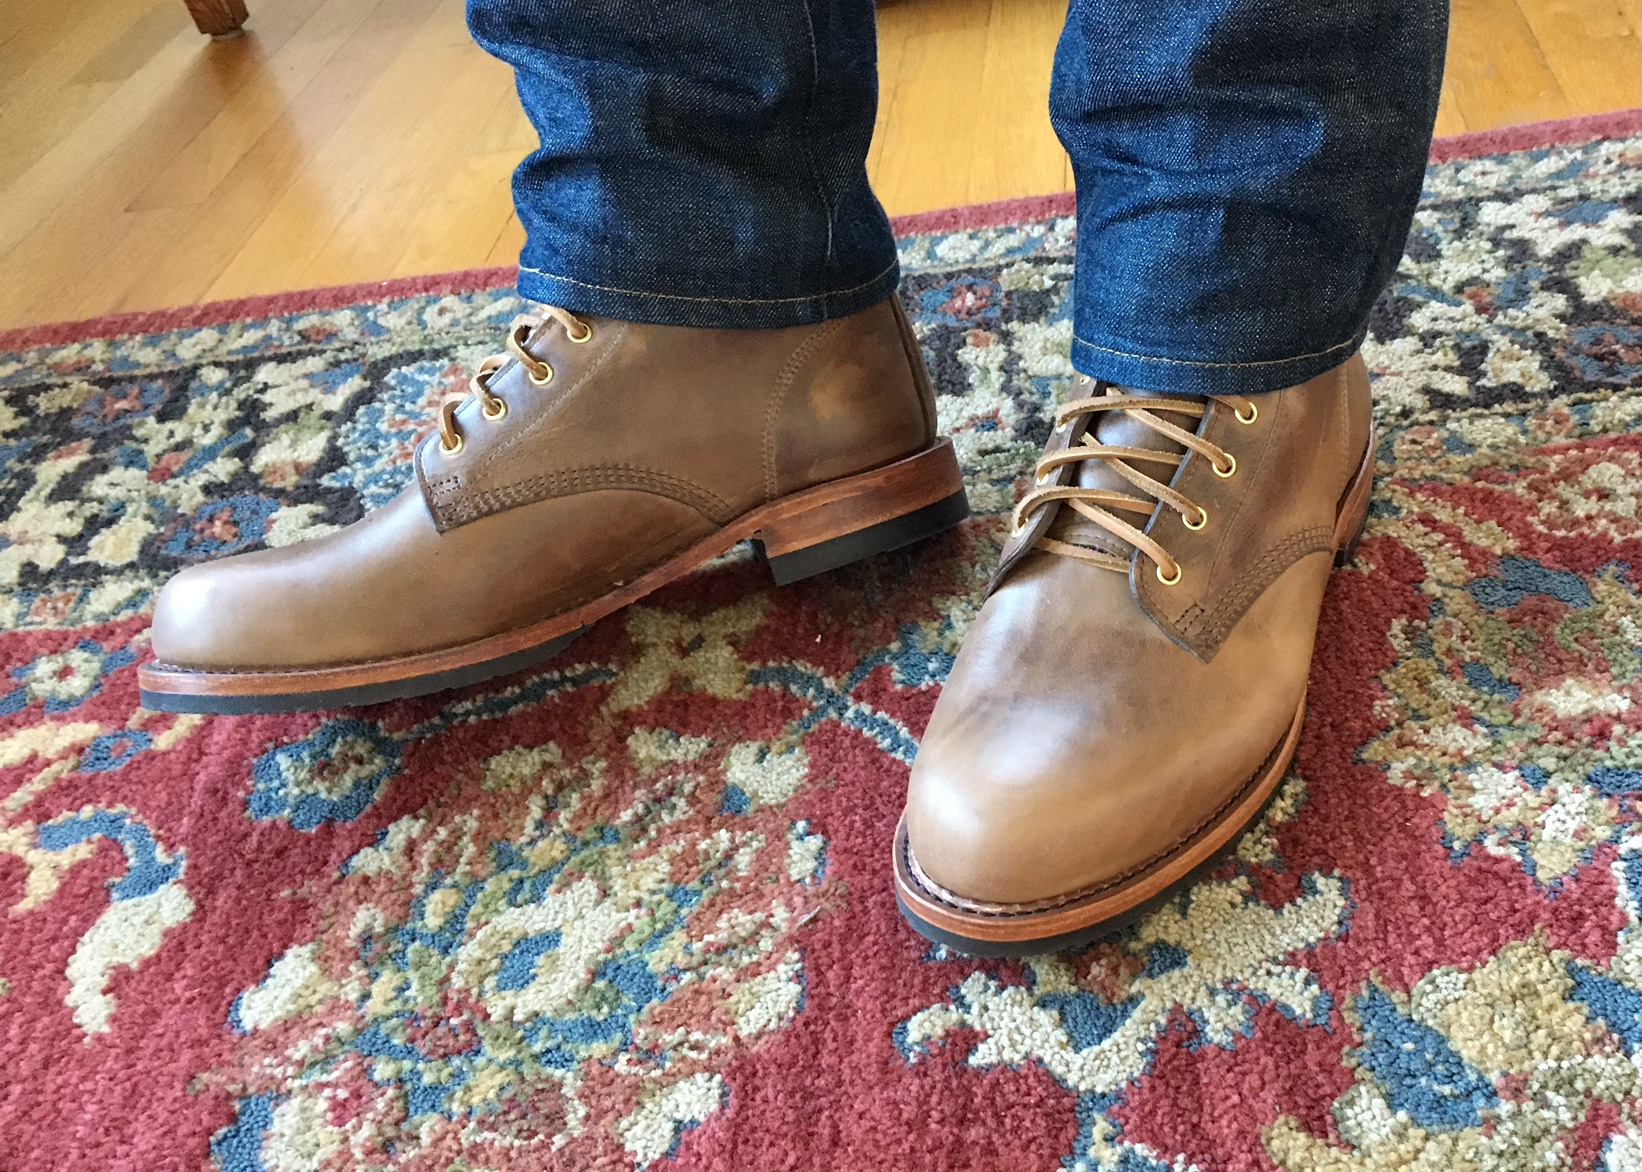 b3b56a7810f727 Wolverine 1000 Mile Boot Review